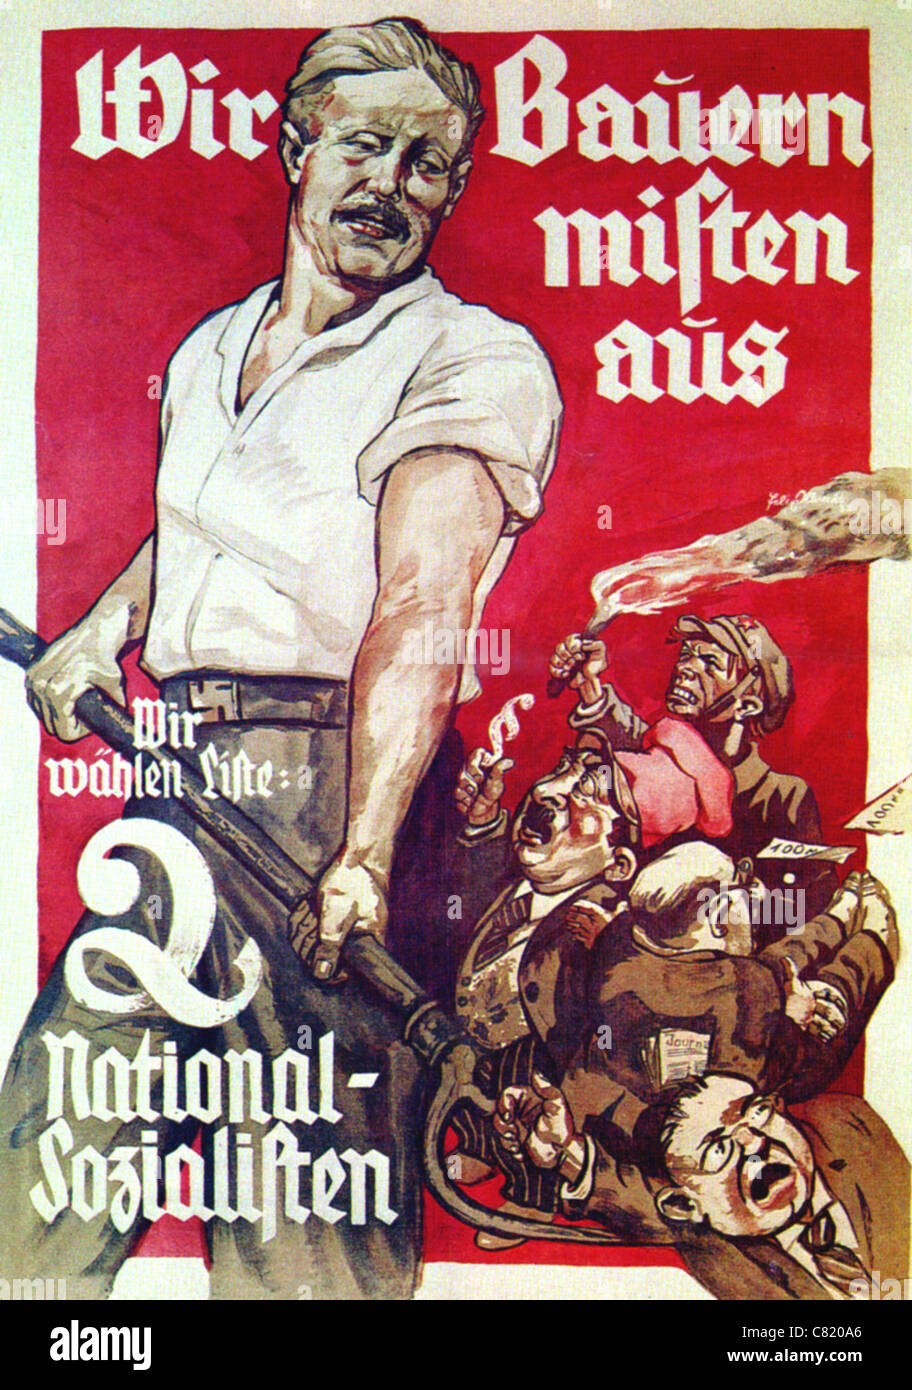 NATIONAL SOCIALIST poster for 1932 German elections. See Description below - Stock Image